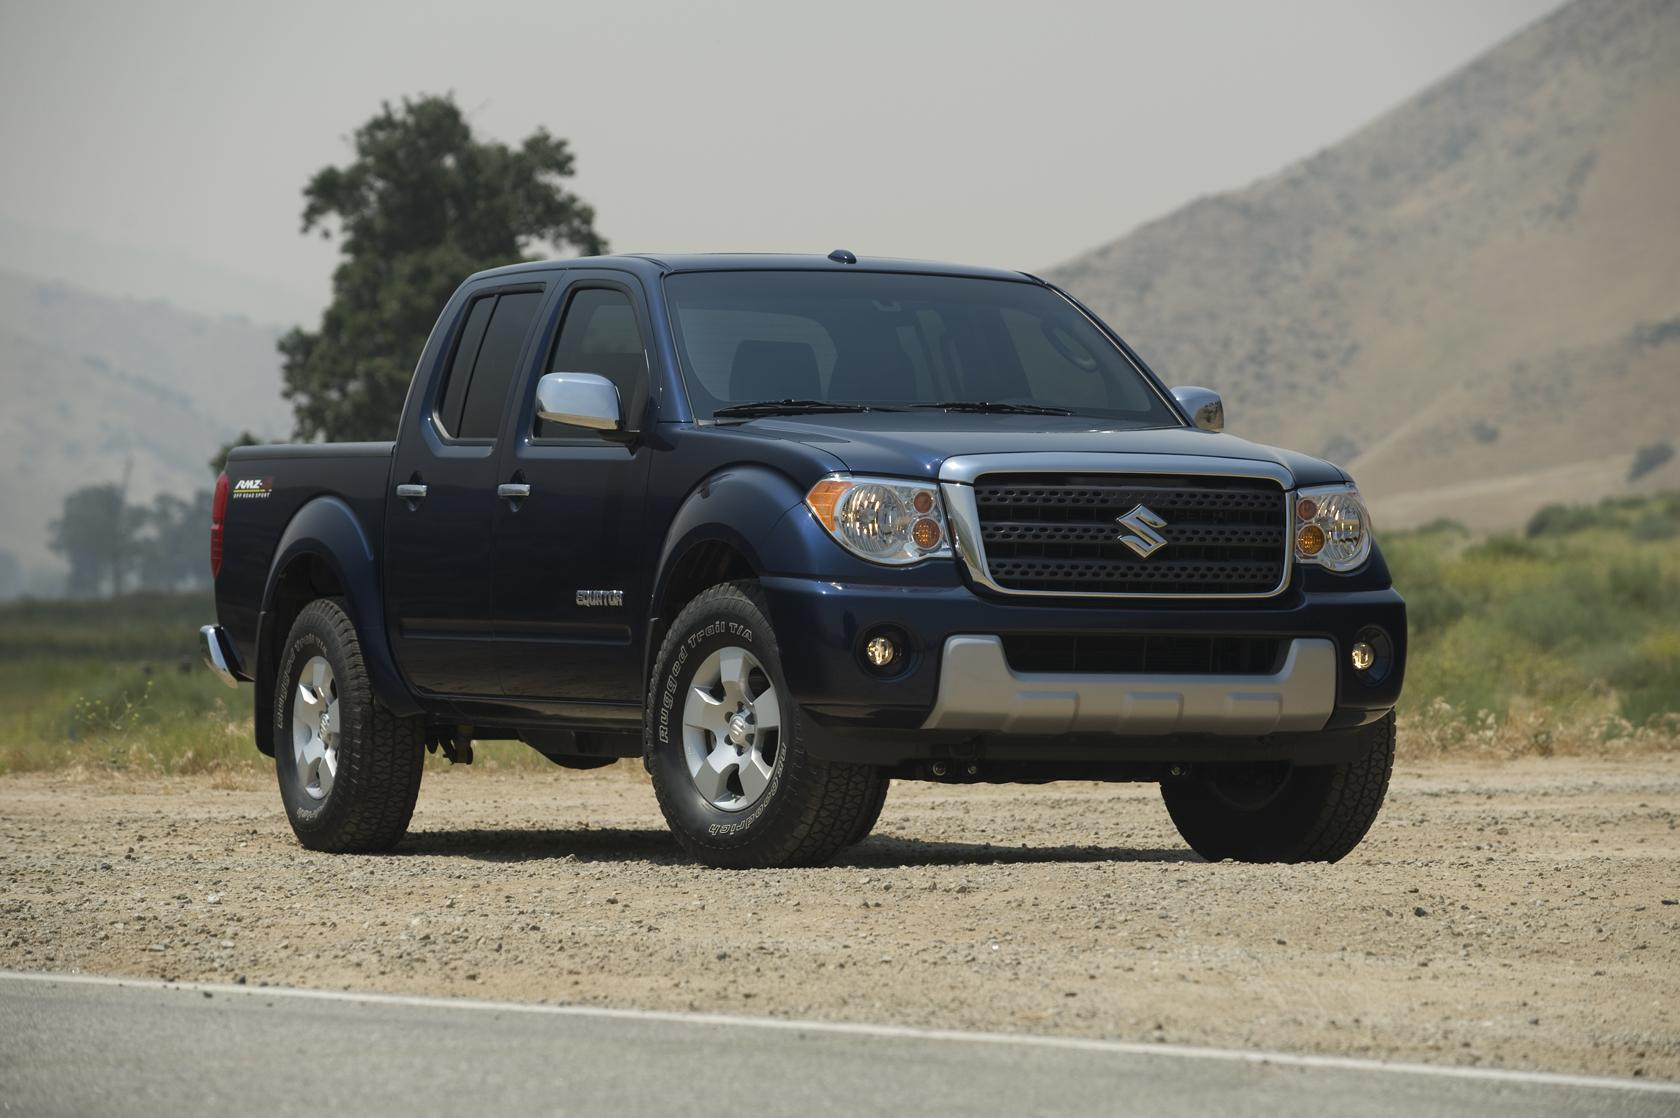 Truck Towing Capacity >> Suzuki Announces Pricing For Award-Winning Equator Pickup ...